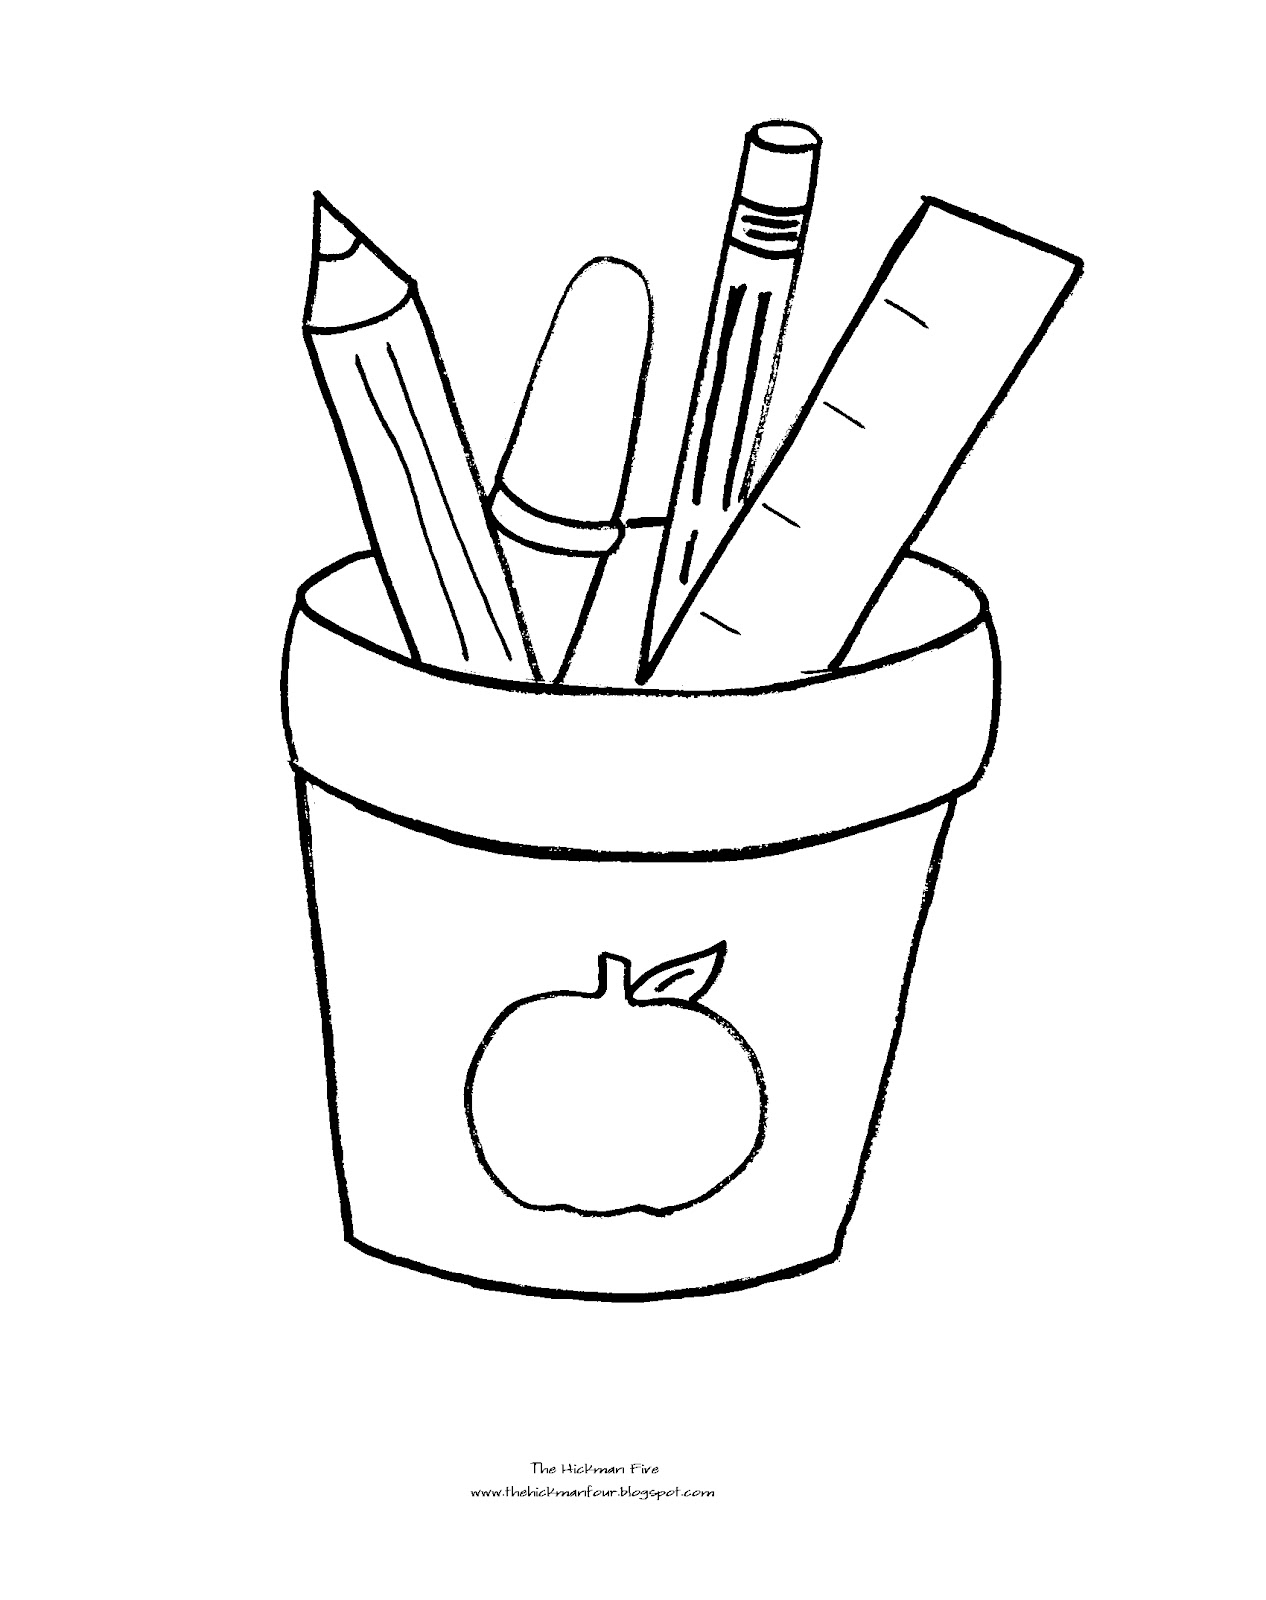 First day of school coloring pages for kindergarten for Back to school coloring pages free printables